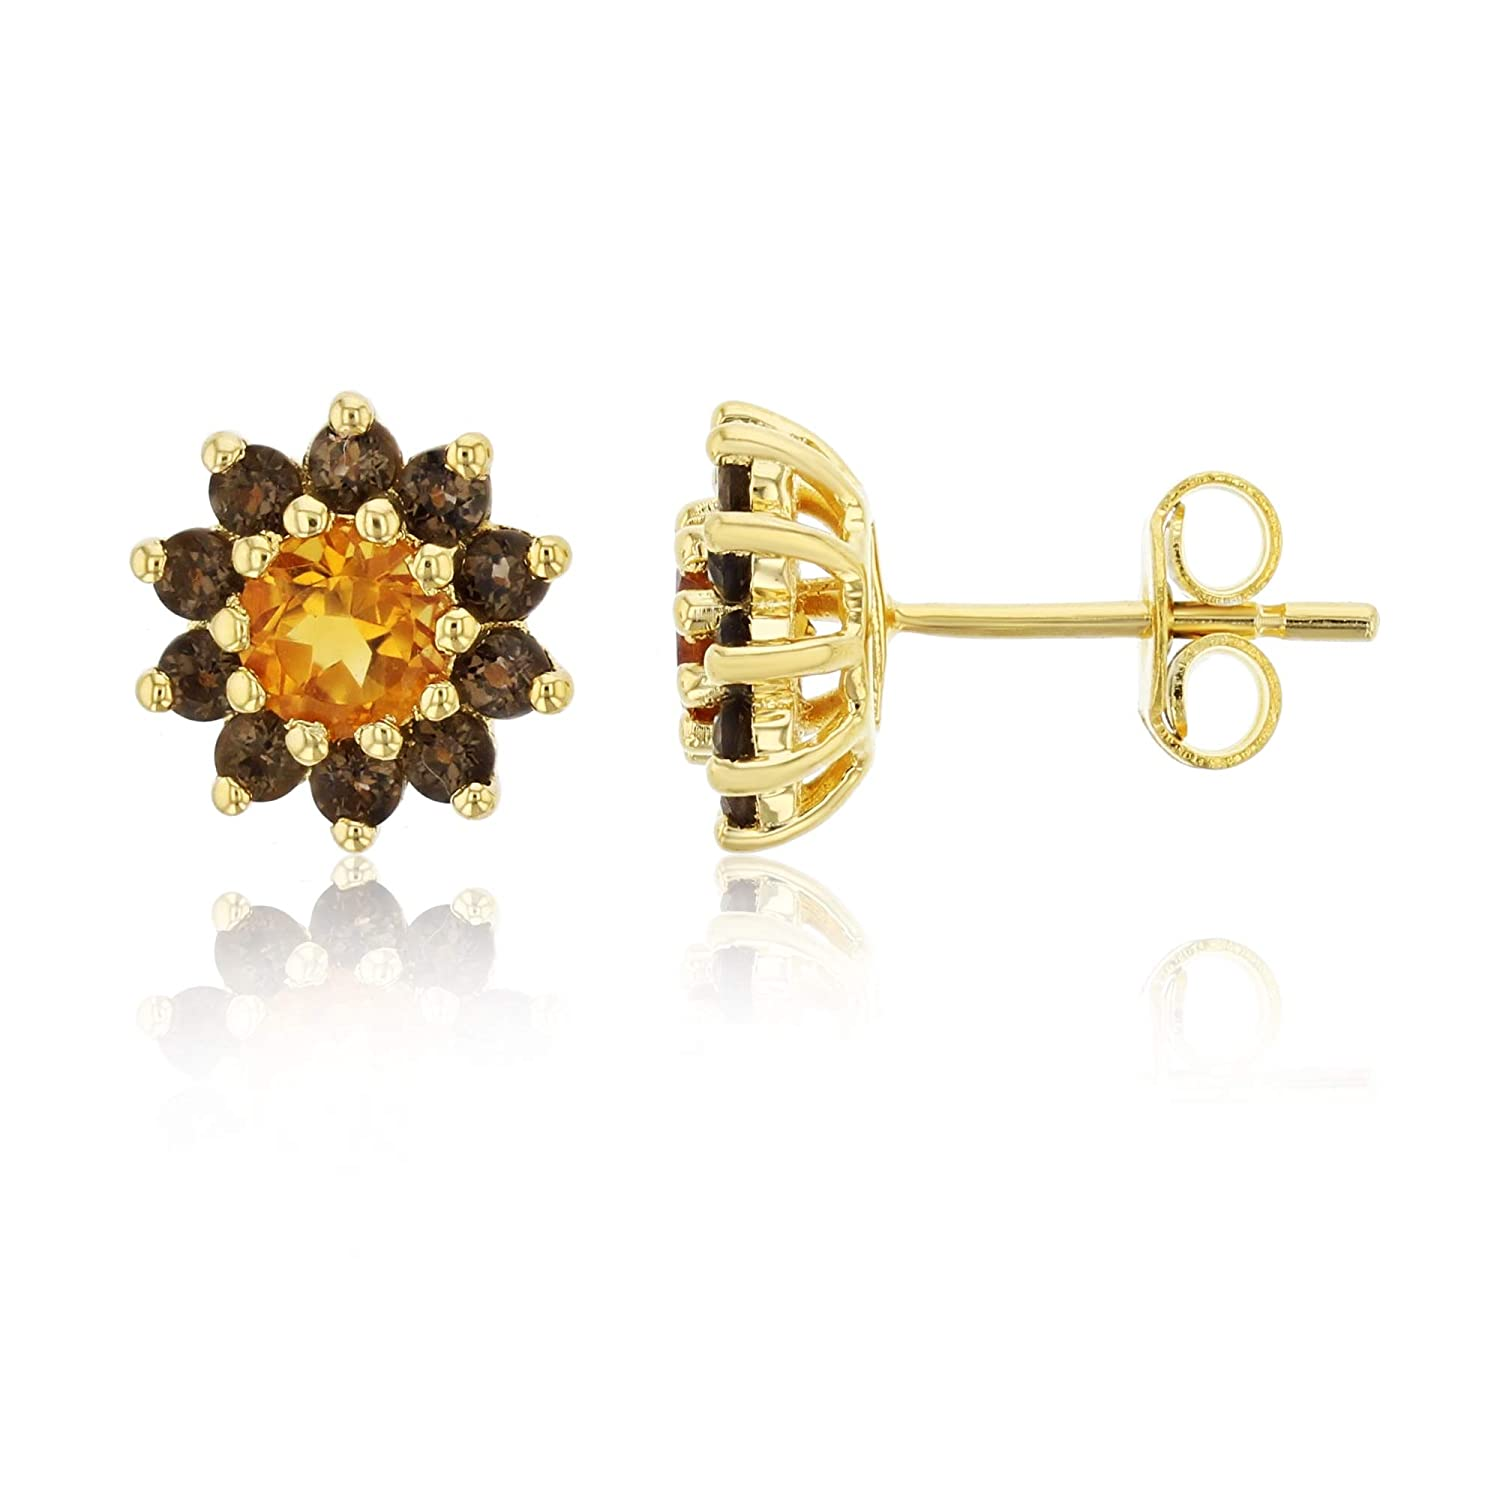 Sterling Silver Yellow Citrine And Smokey Quartz Flower Stud Earring Decadence SSE8728Y4F